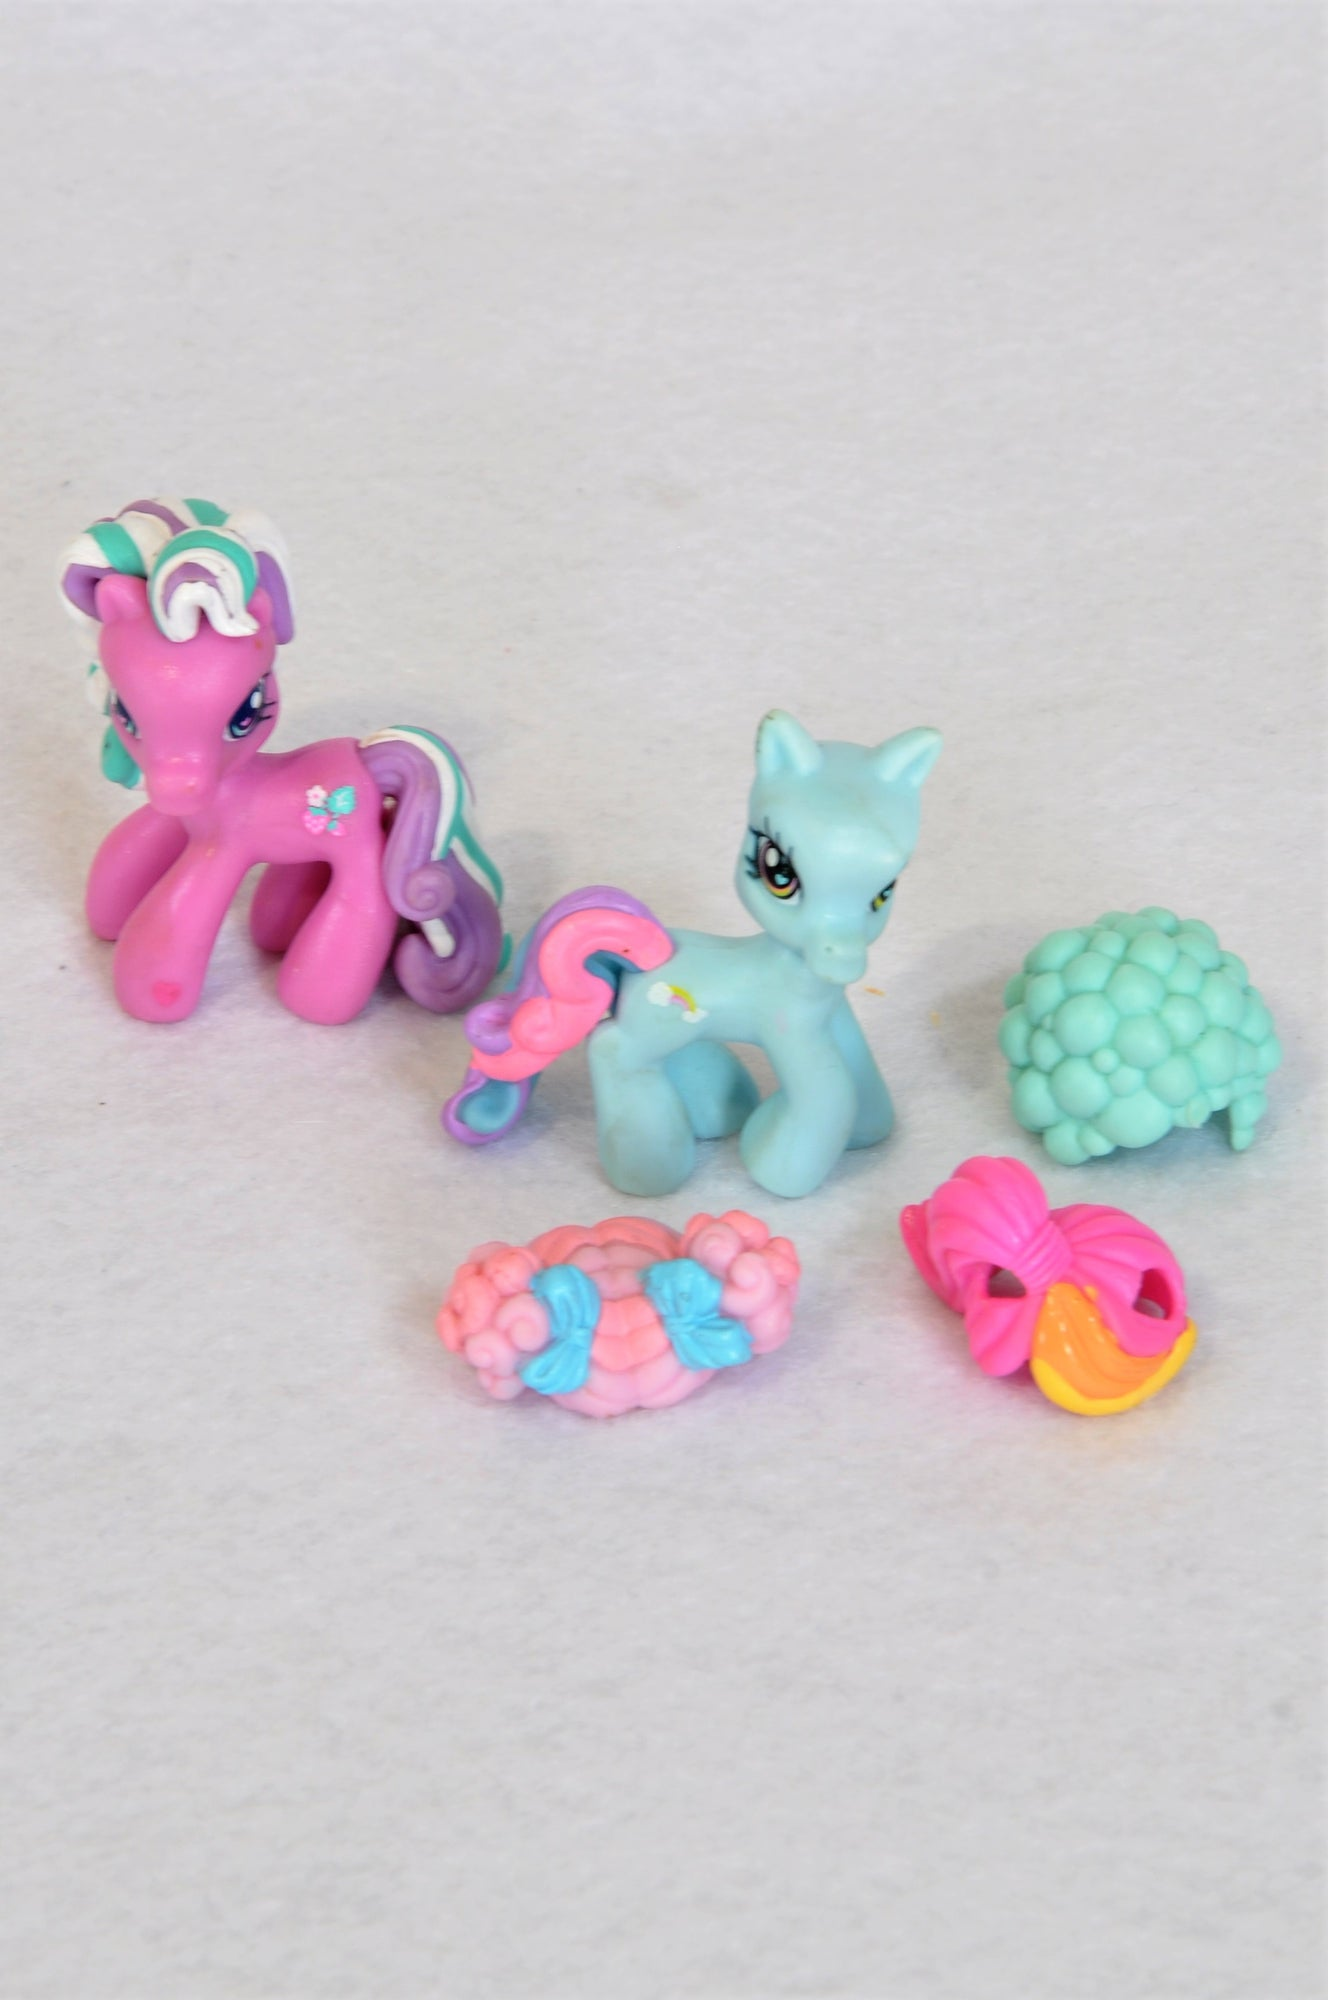 Hasbro 2 Pack Blue & Pink My Little Pony With Changeable Hair Toys Girls 3-10 years